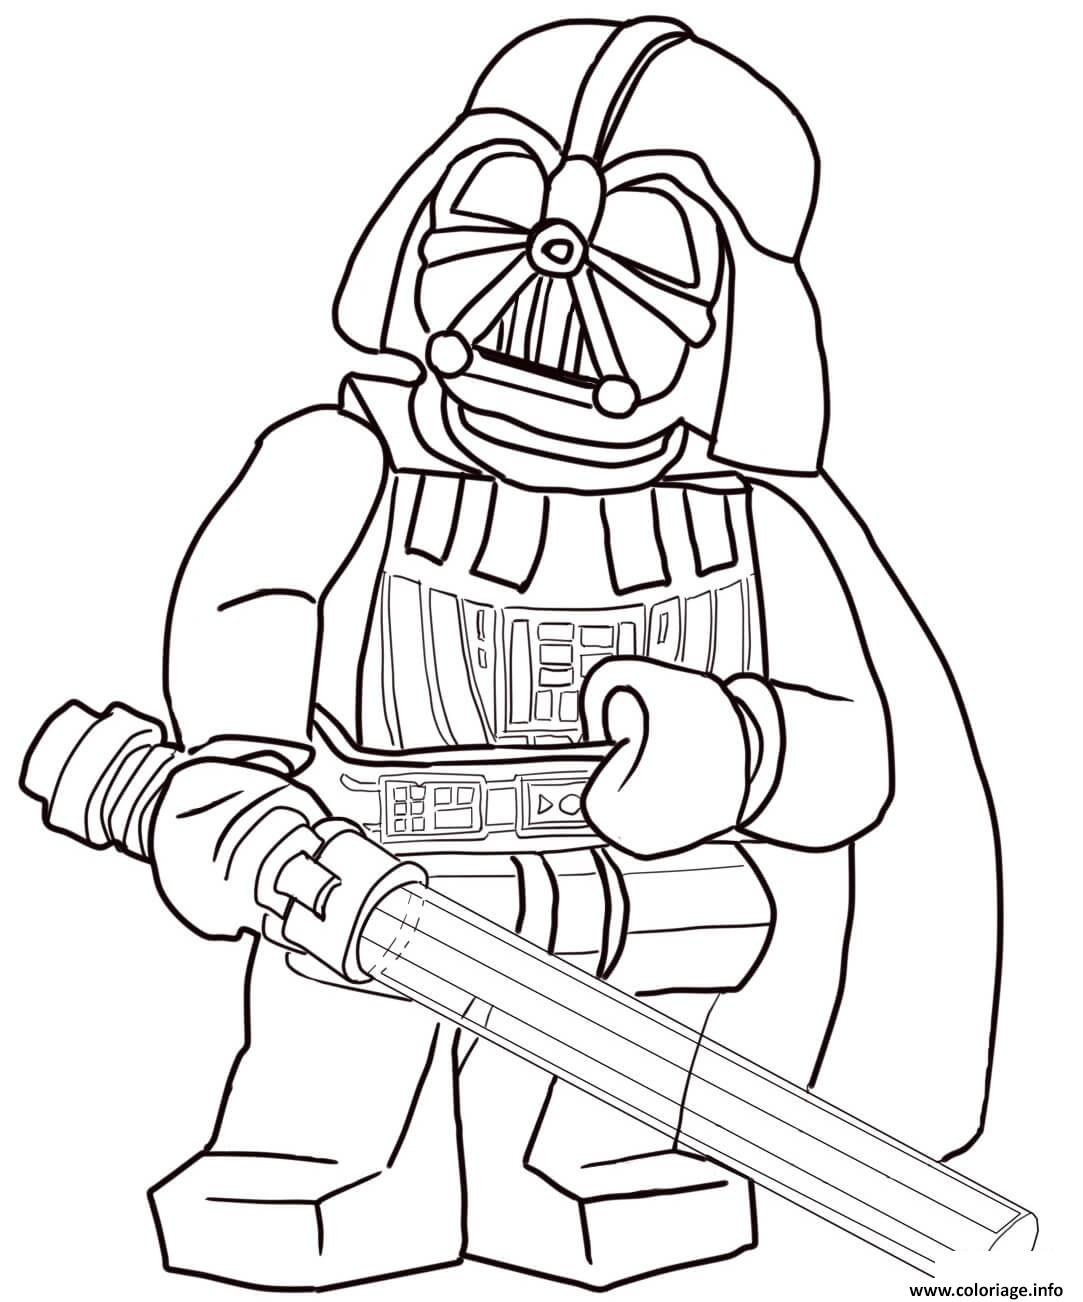 Coloriage lego star wars 3 movie dessin - Coloriage magique star wars ...